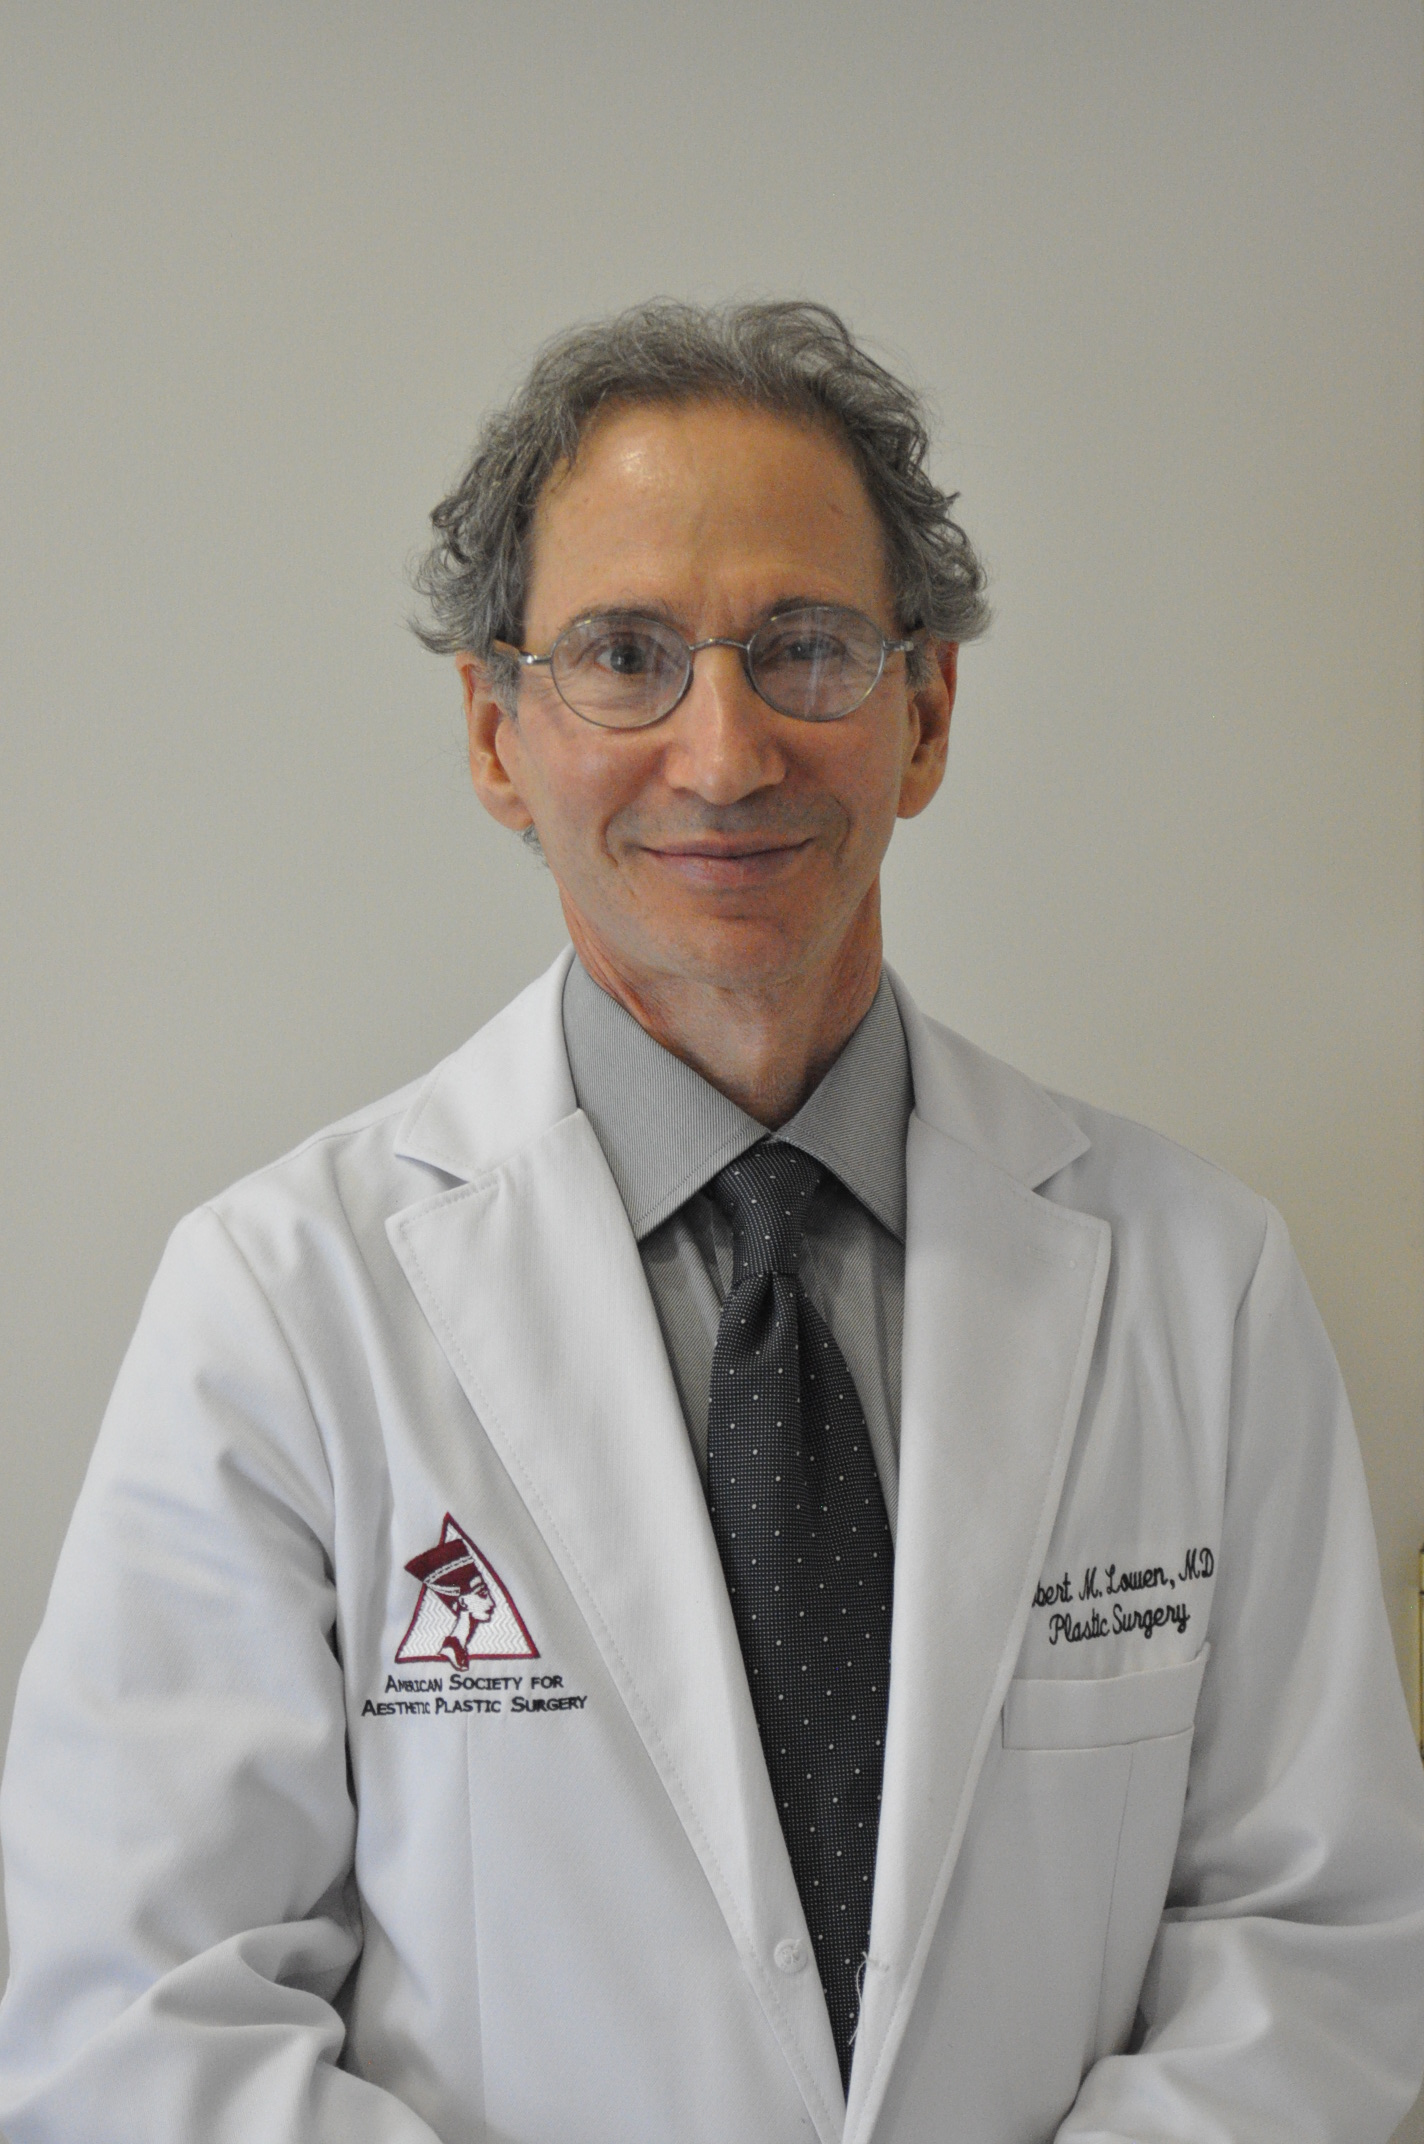 Robert Lowen, MD